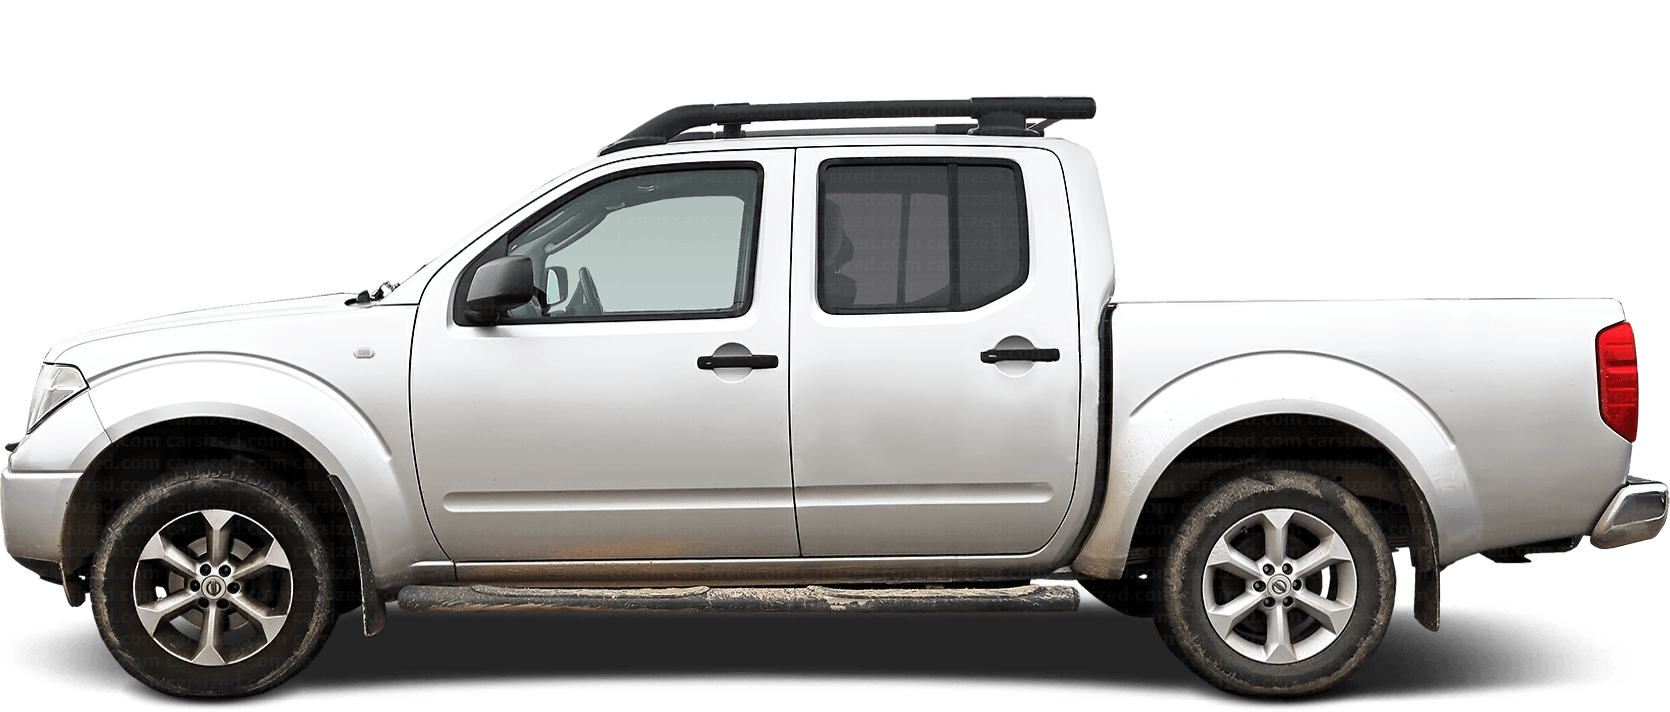 Nissan Navara Pick-up 2004-2014